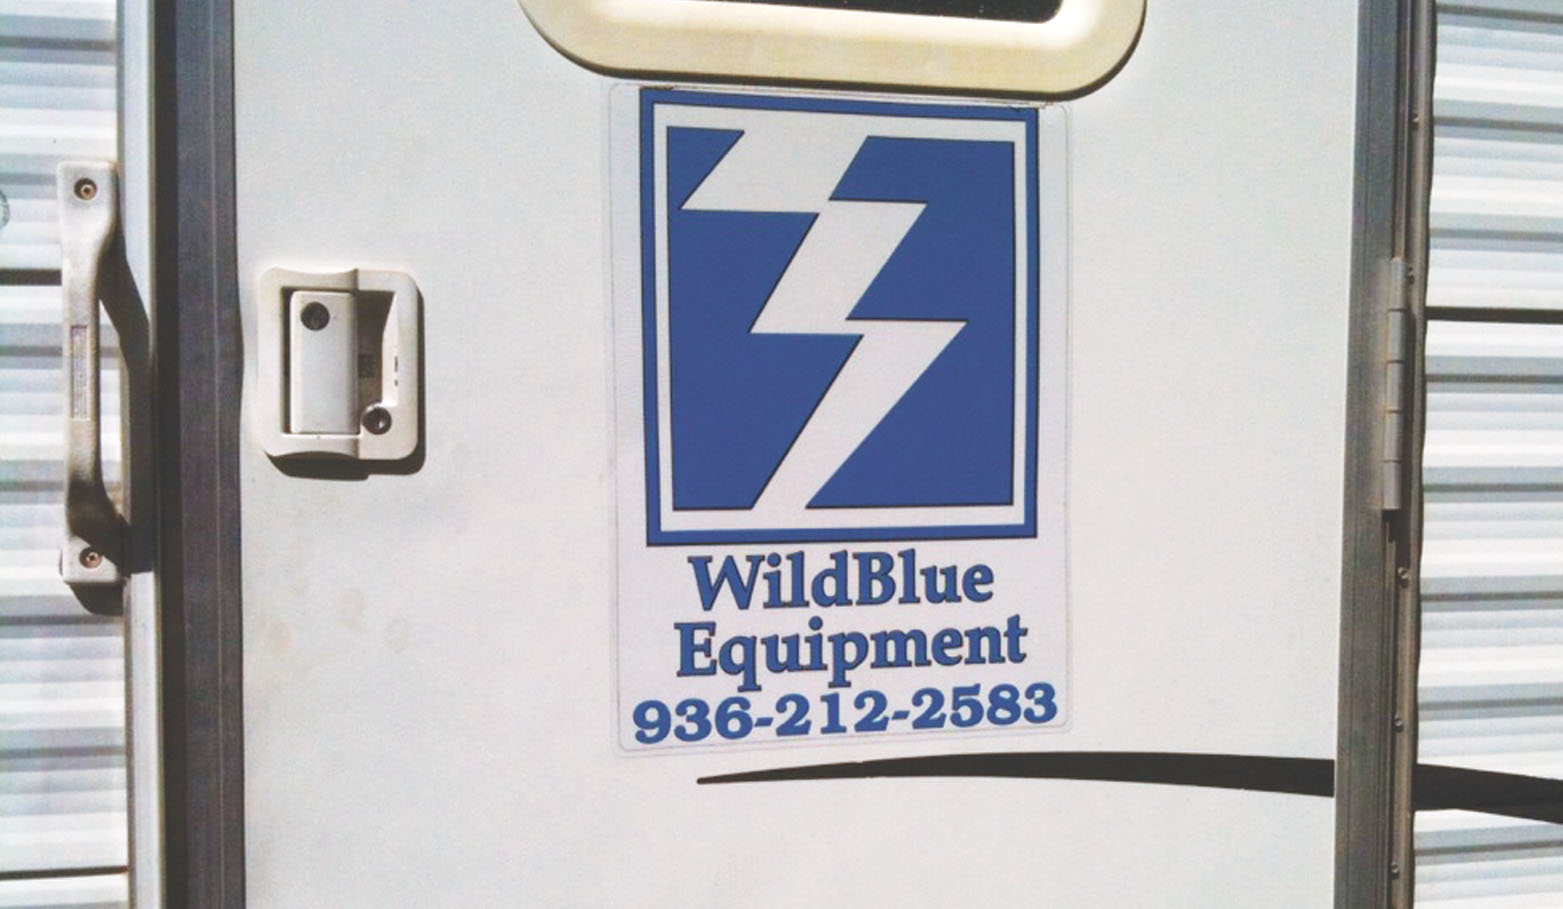 Wild Blue Equipment reported their travel trailer was missing.